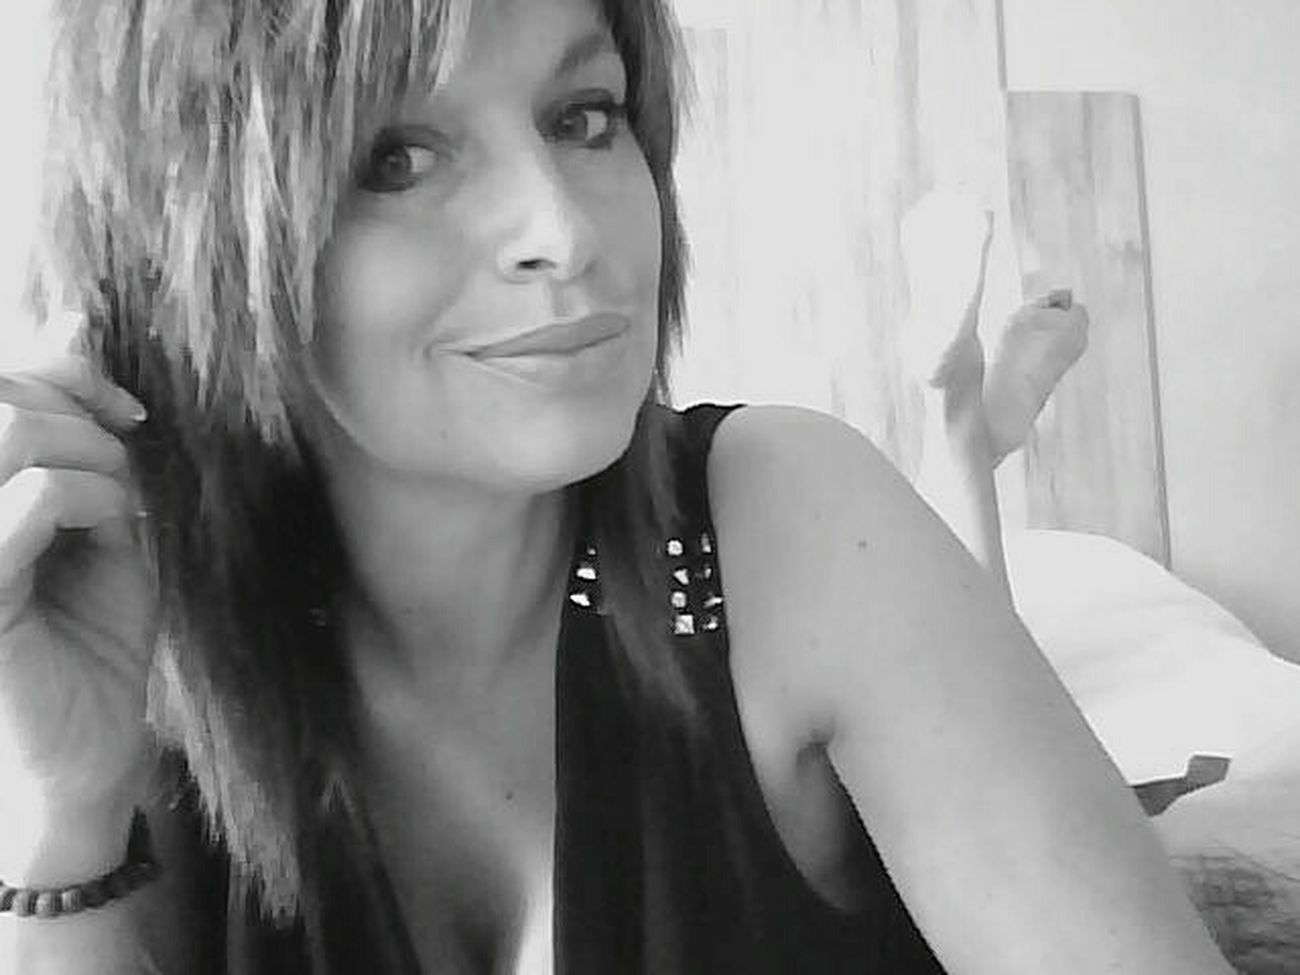 Taking Photos Selfie ✌ That's Me Black And White Taking Time New Haircut At Home Sweet Home Weekend Goodtime